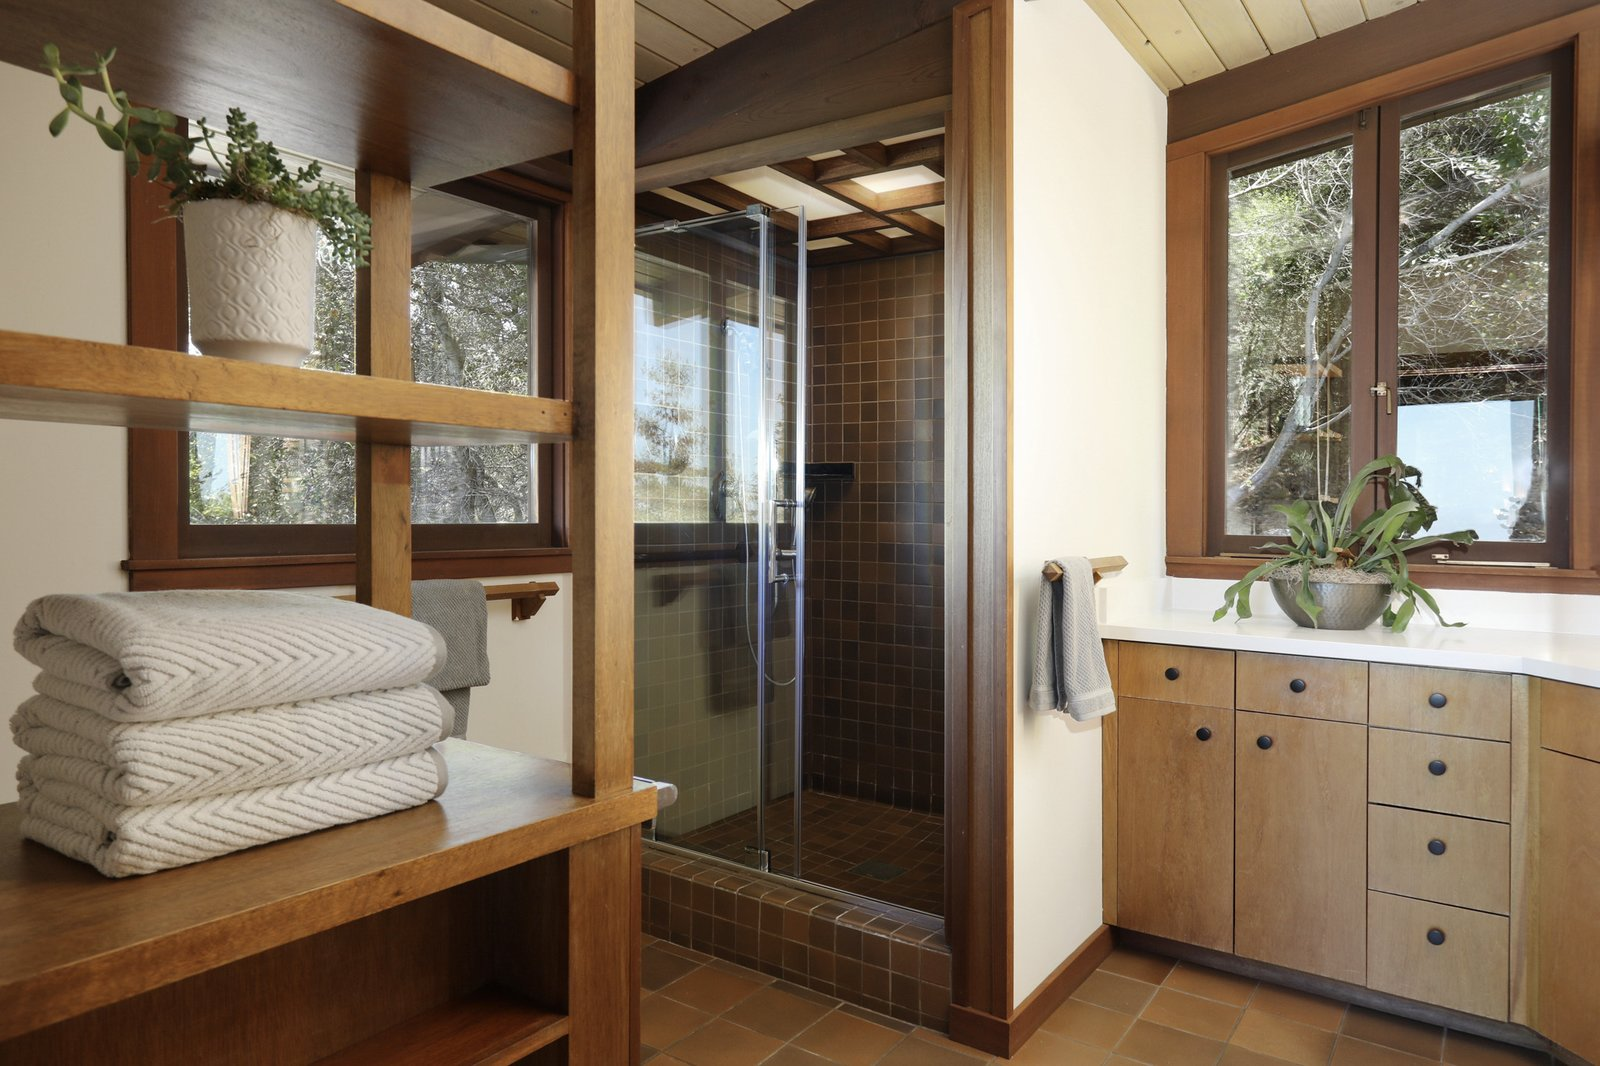 A large shower is located in one corner of the bathroom.  Photo 14 of 19 in An Alluring Berkeley Hills Home by a Case Study Architect Asks $2.9M